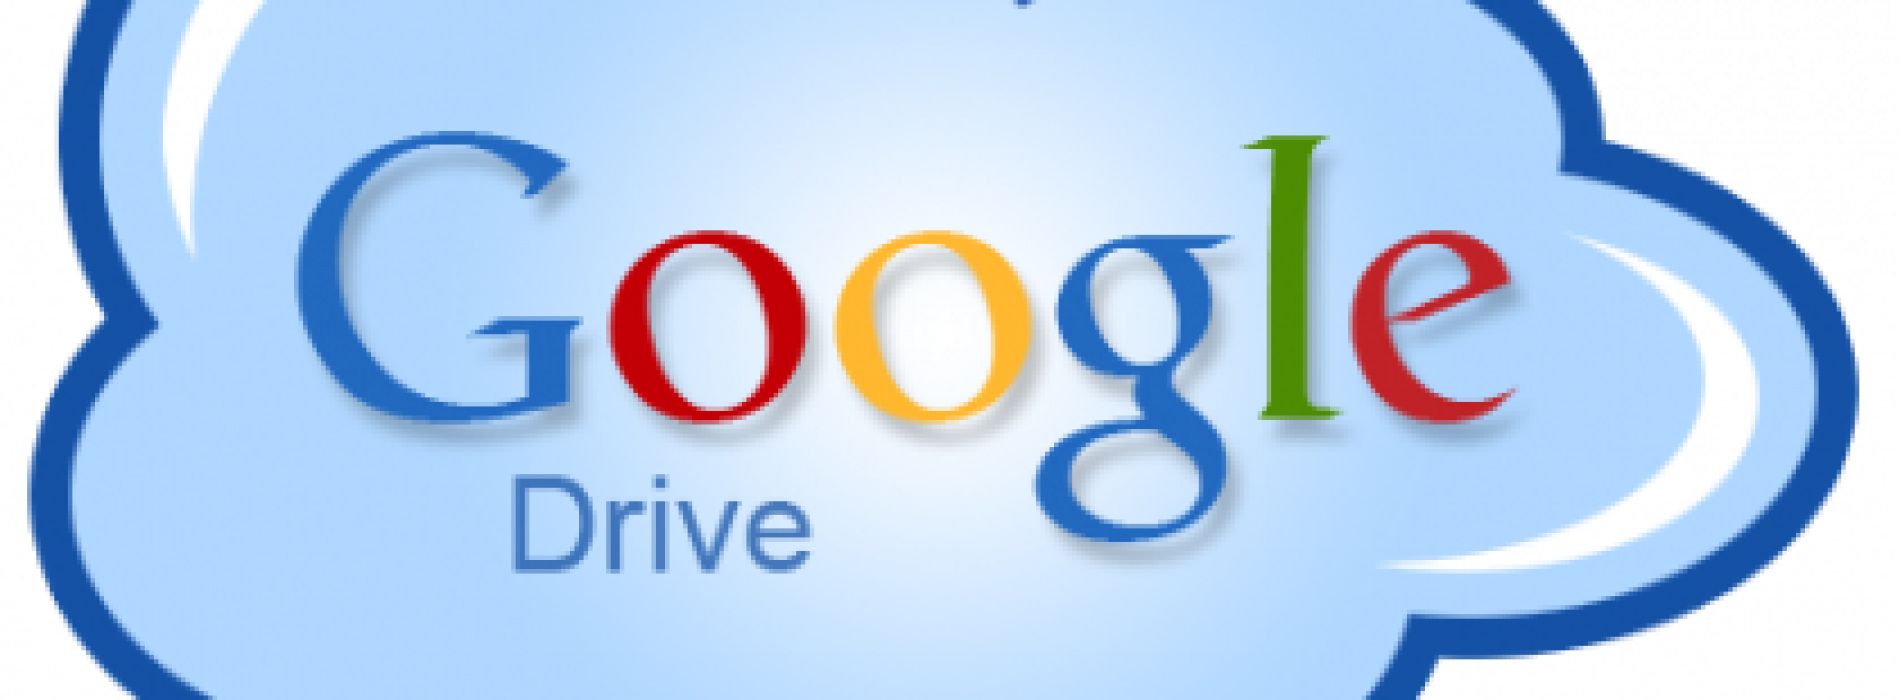 Google Drive announcement imminent today?